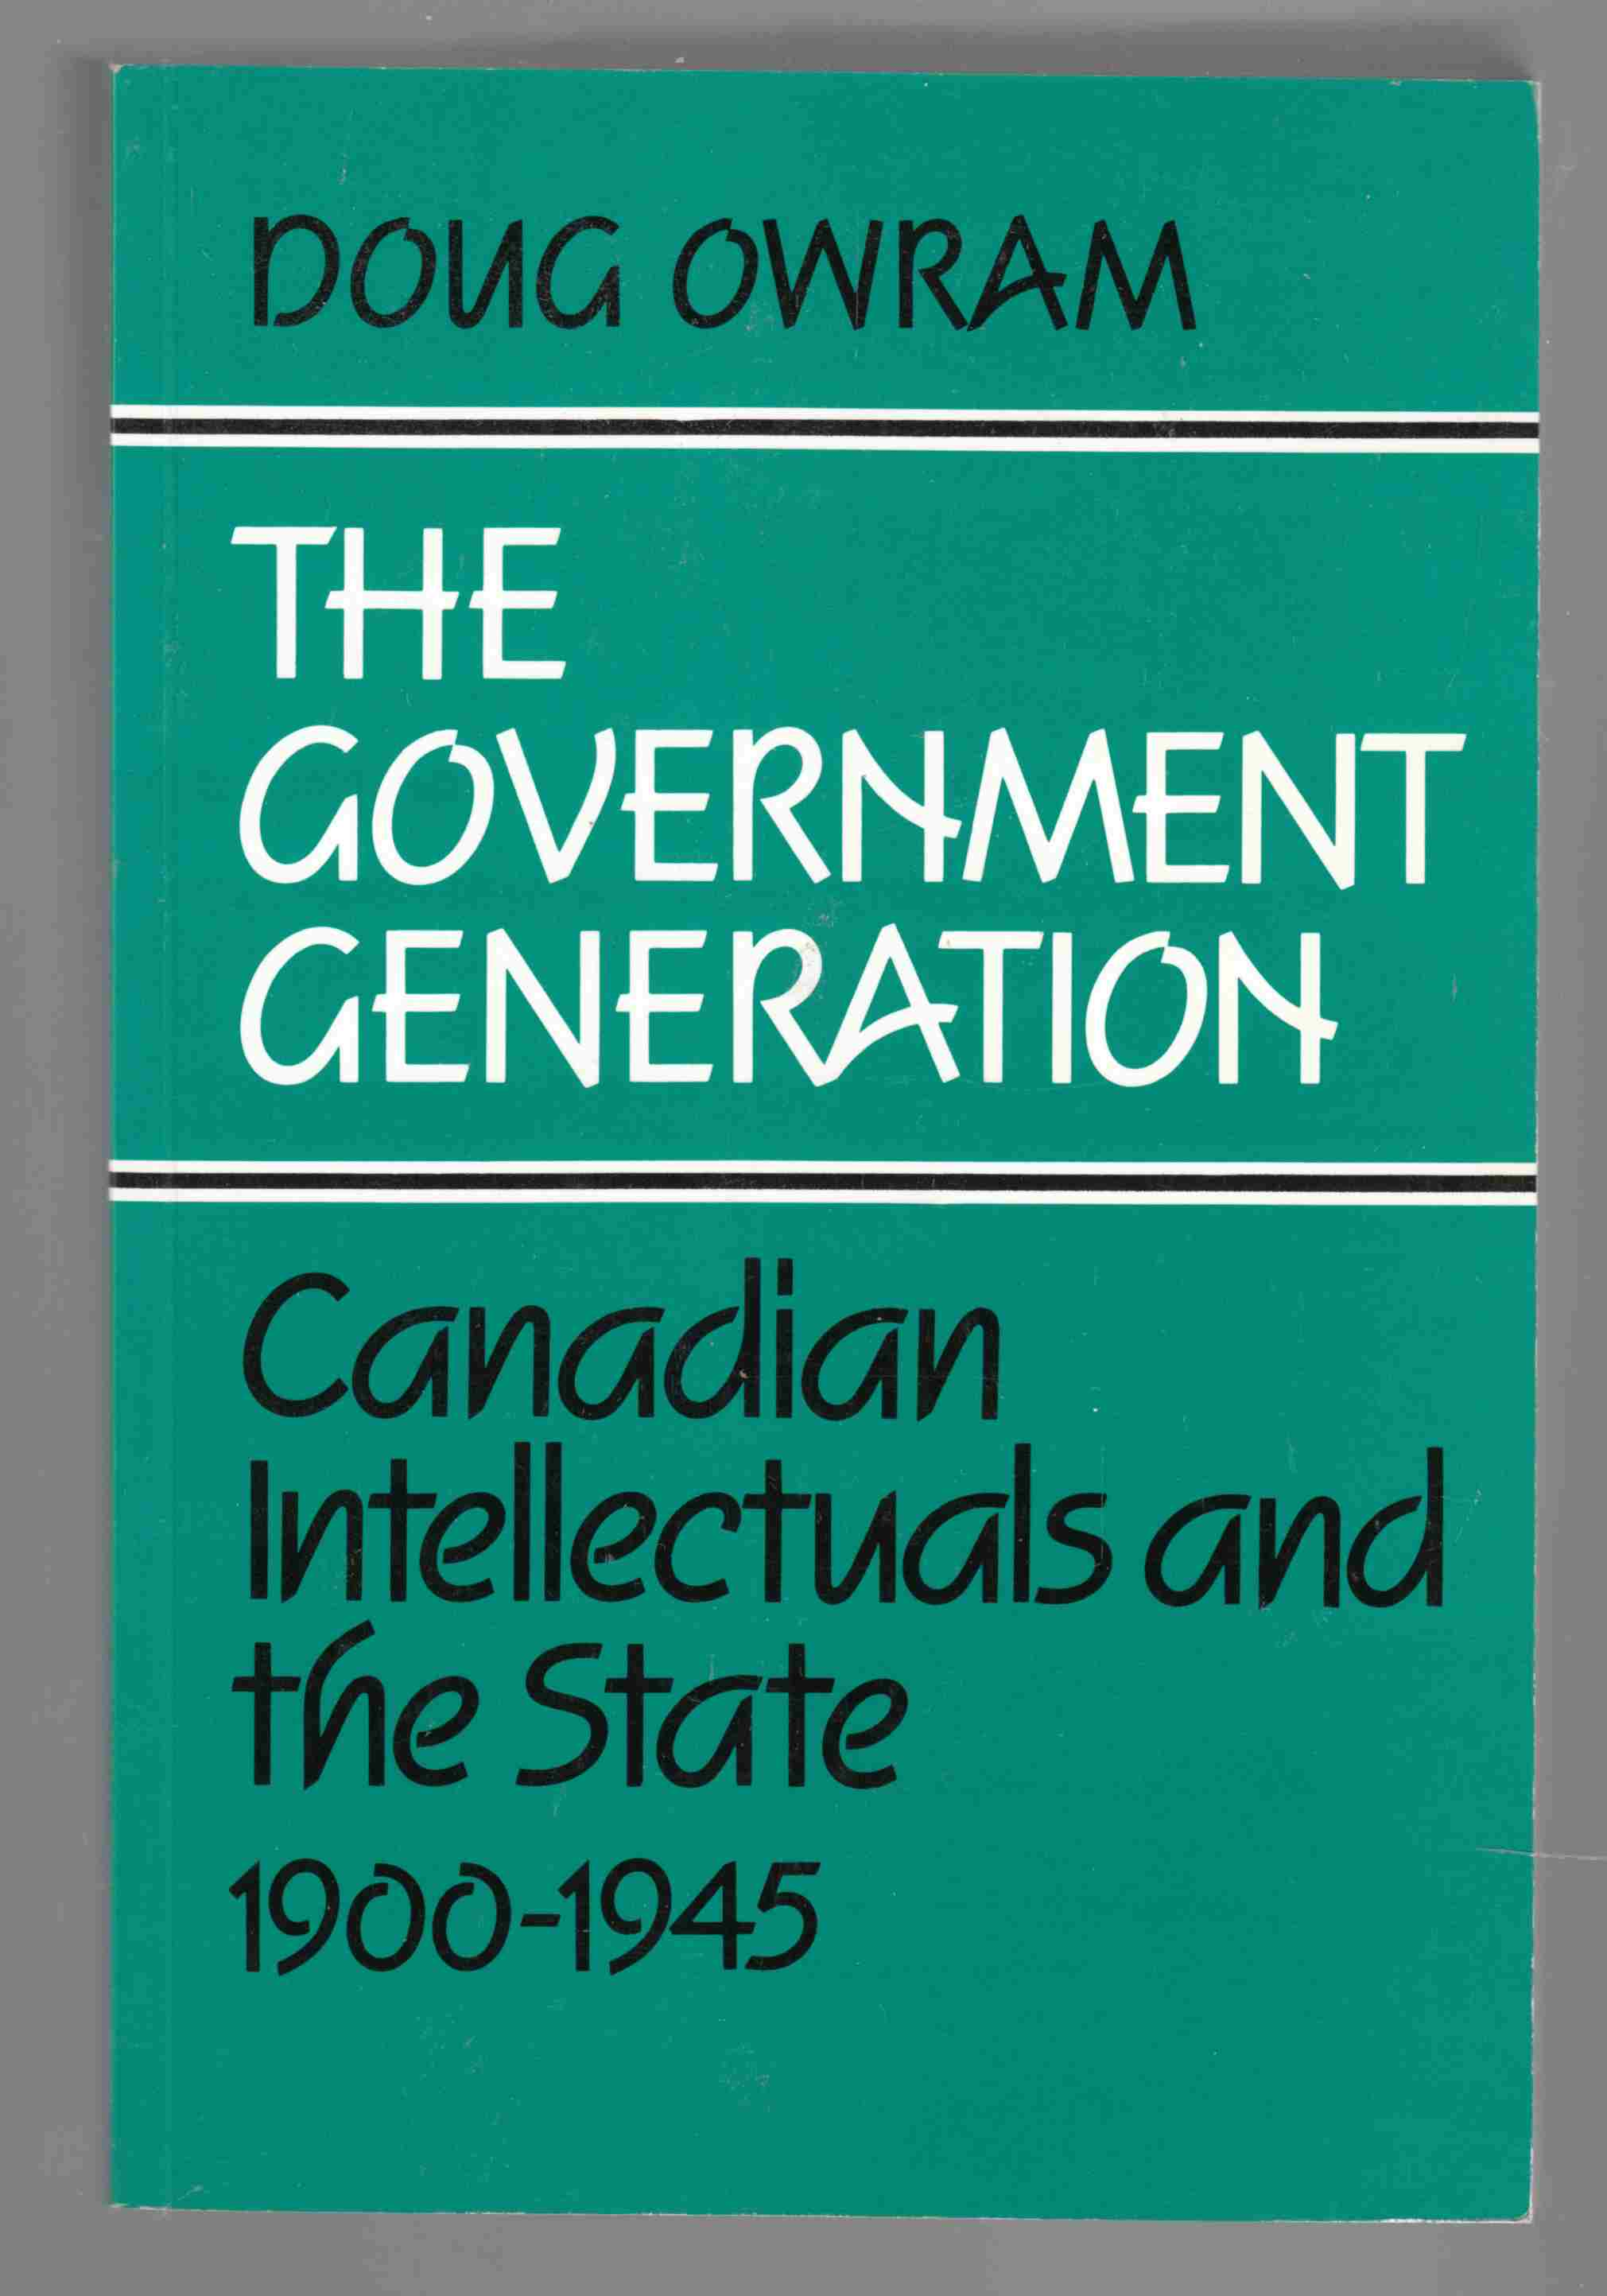 Image for The Government Generation Canadian Intellectuals and the State 1900-1945